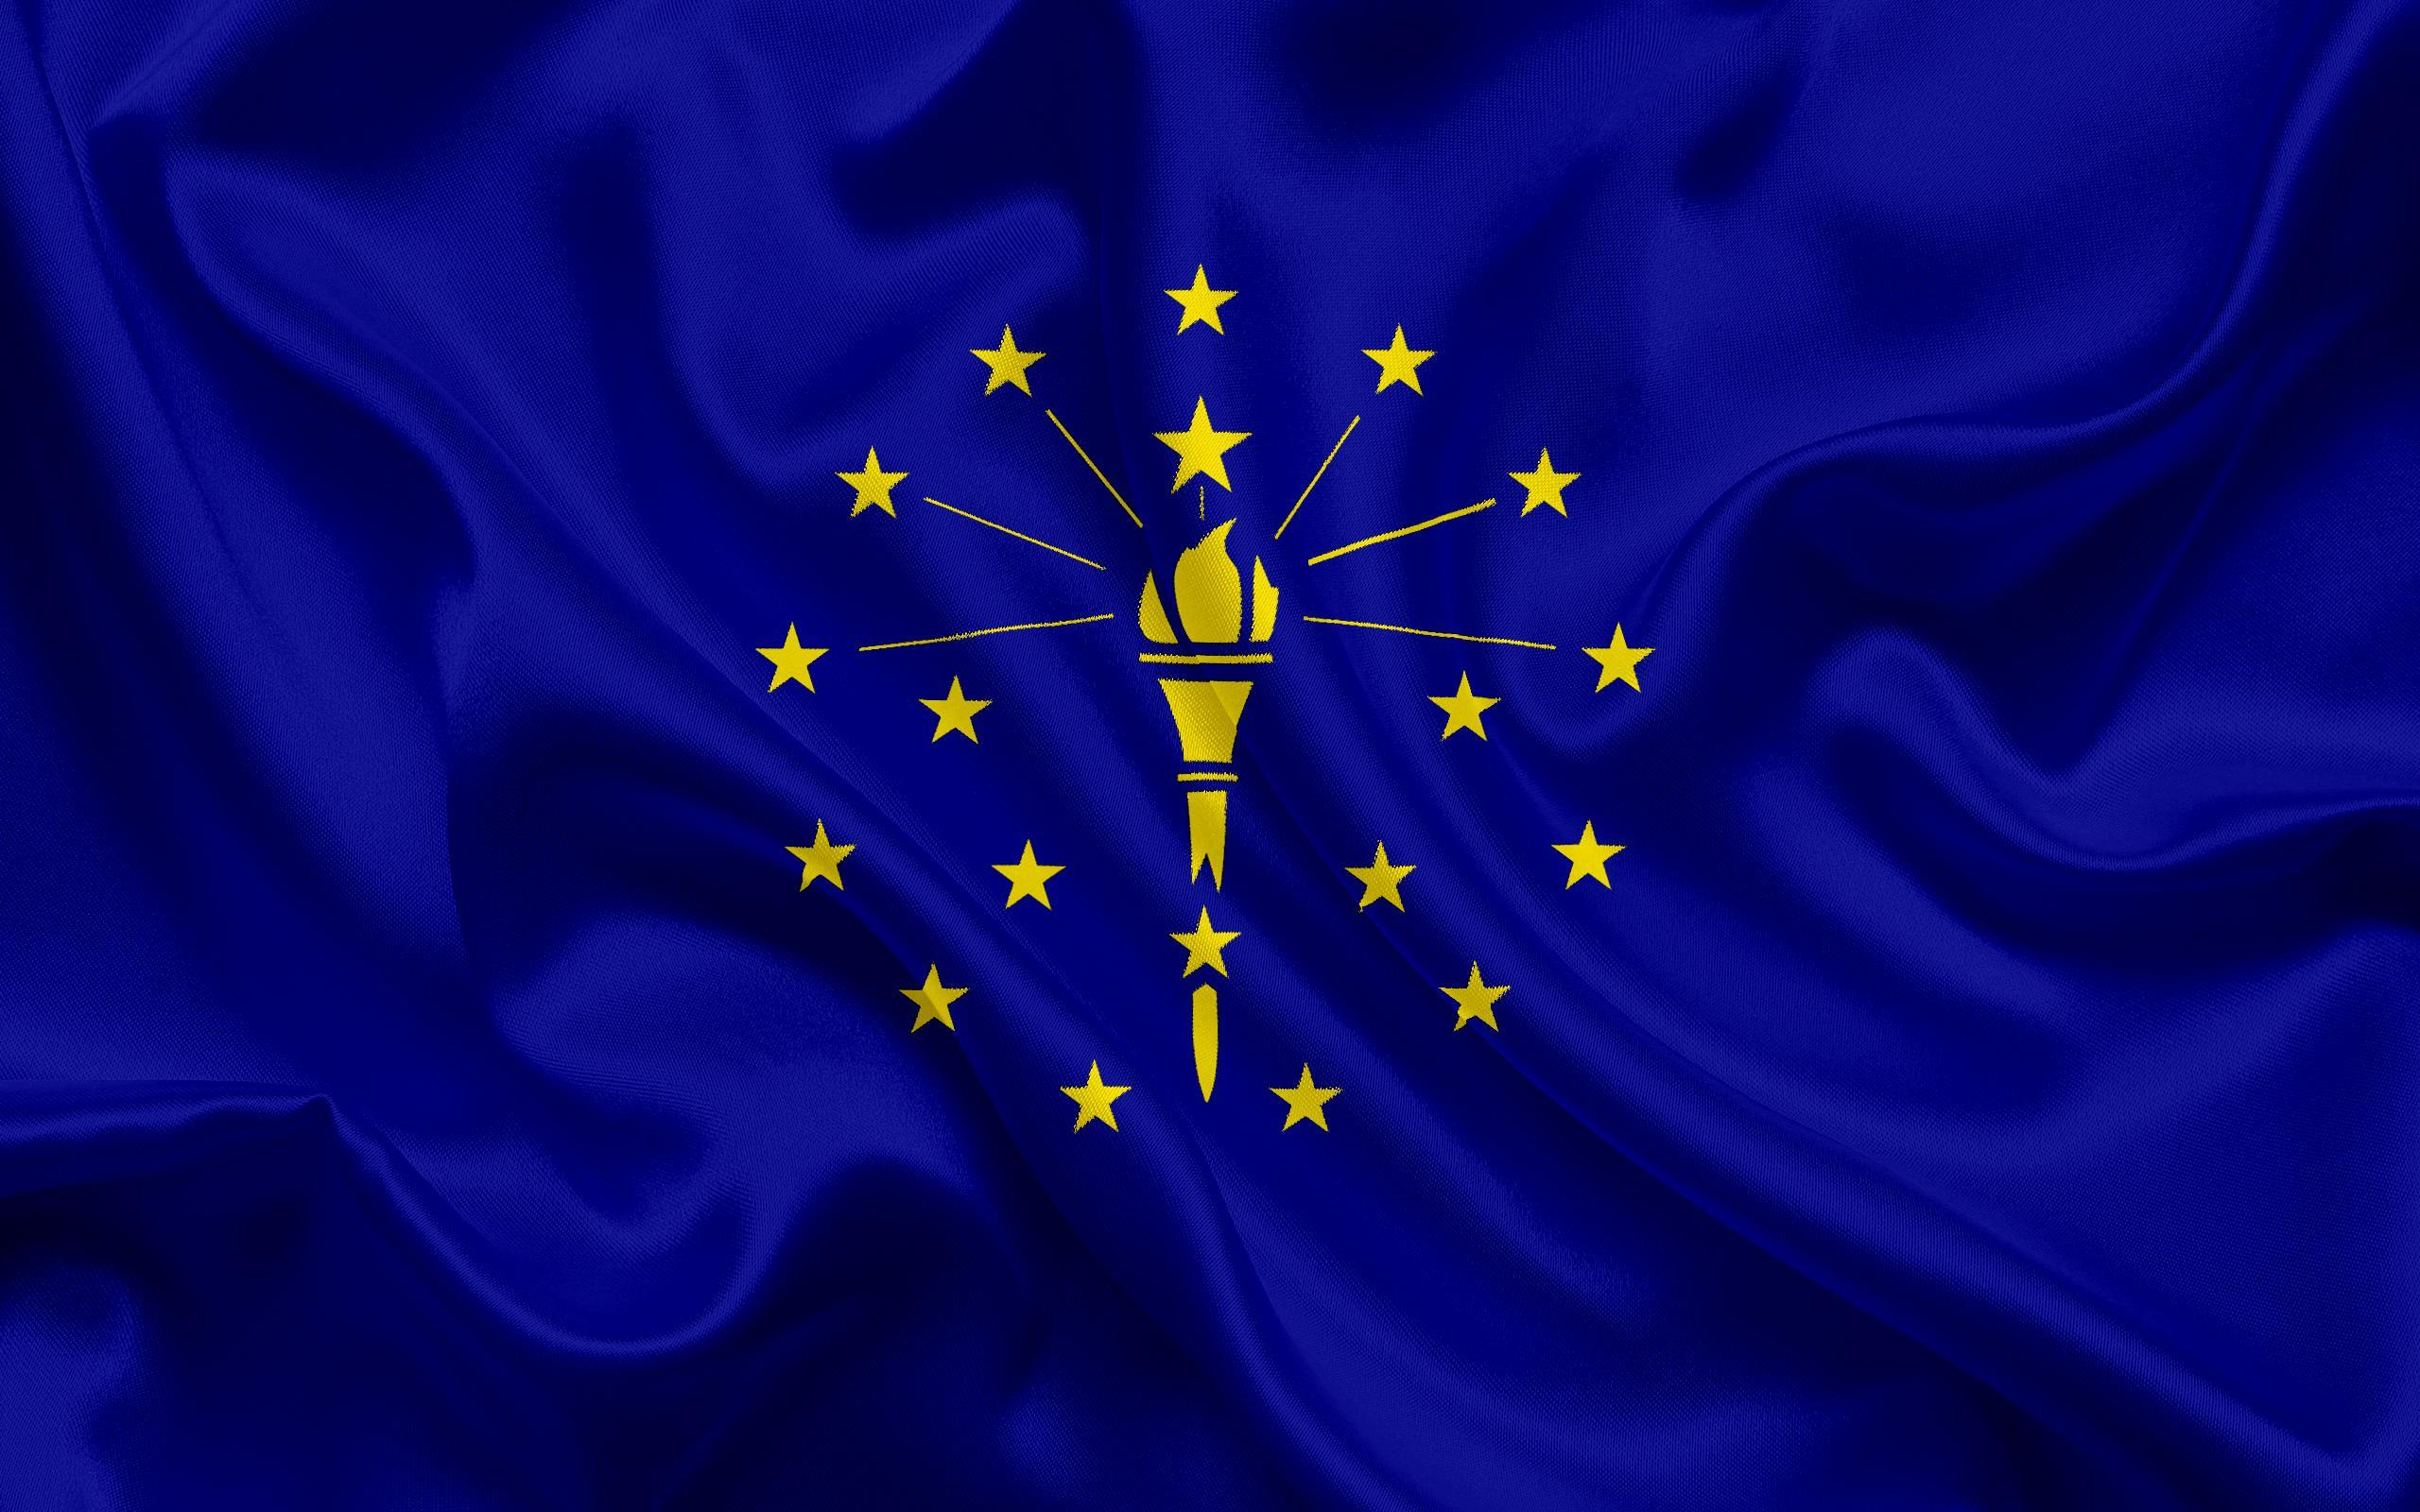 Download wallpapers Indiana Flag, flags of States, flag State of ...